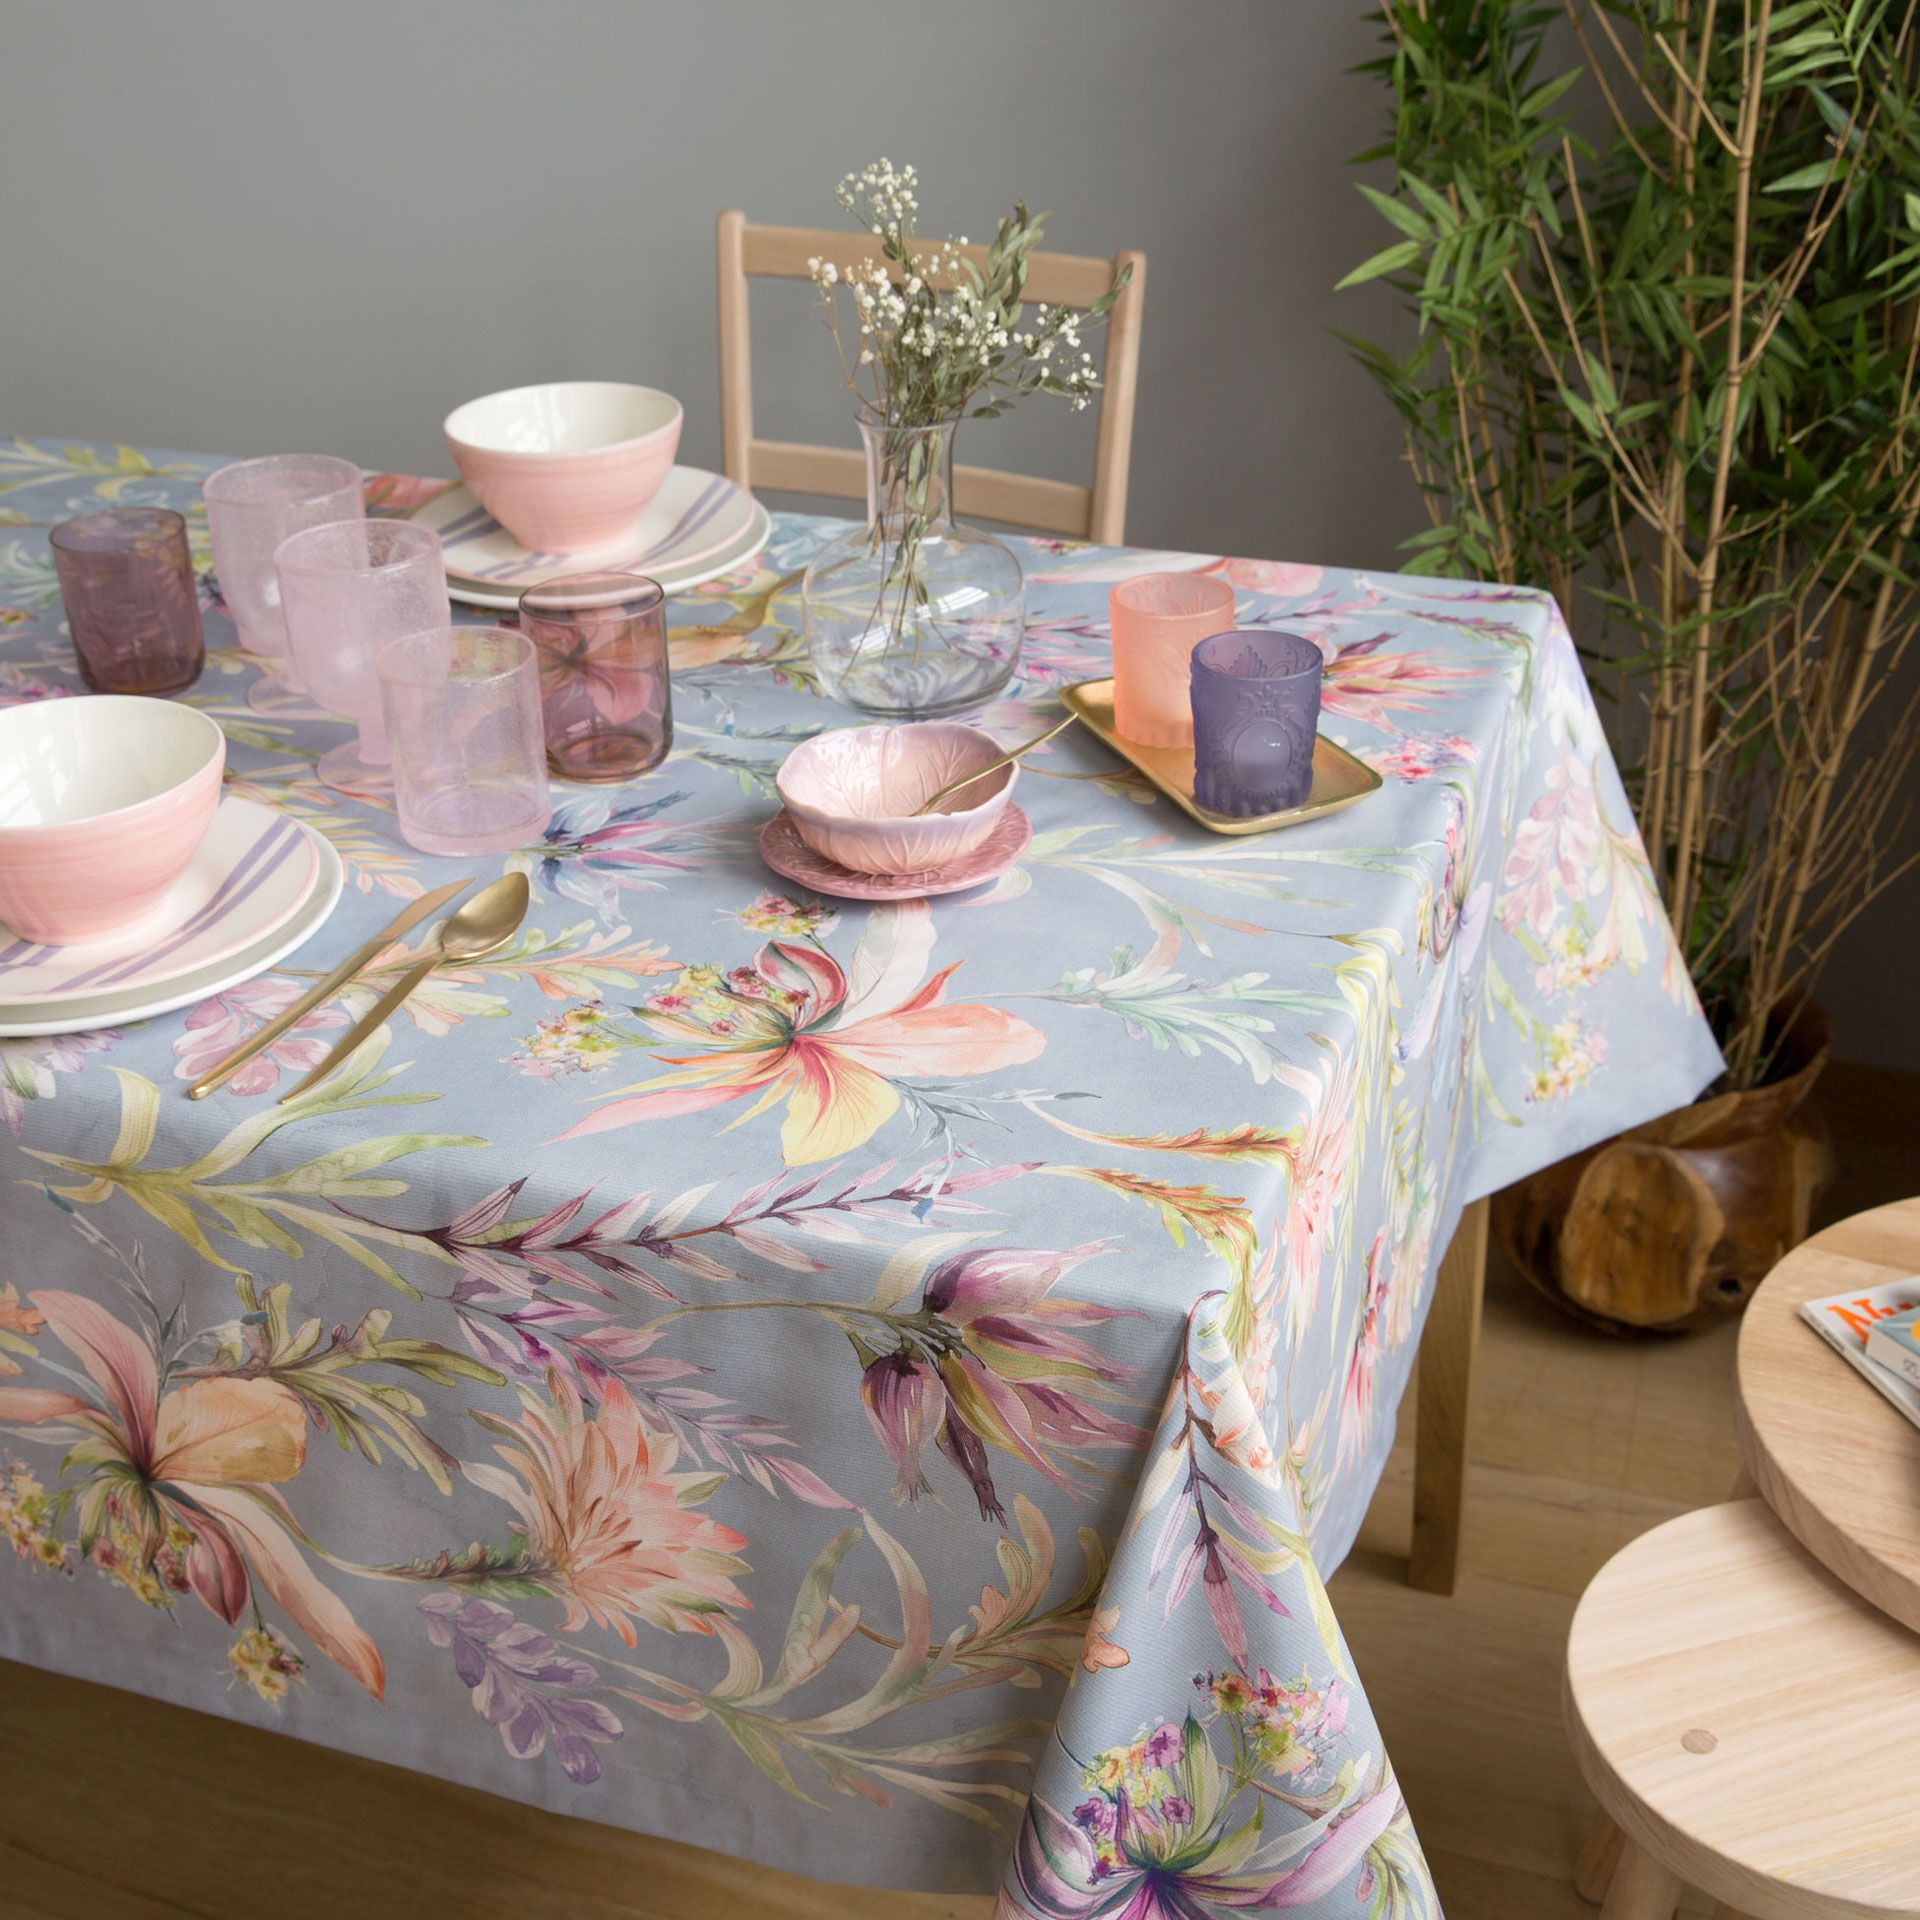 Good Flower Print Tablecloth (Easy Care)   Tablecloths And Napkins   Tableware |  Zara Home